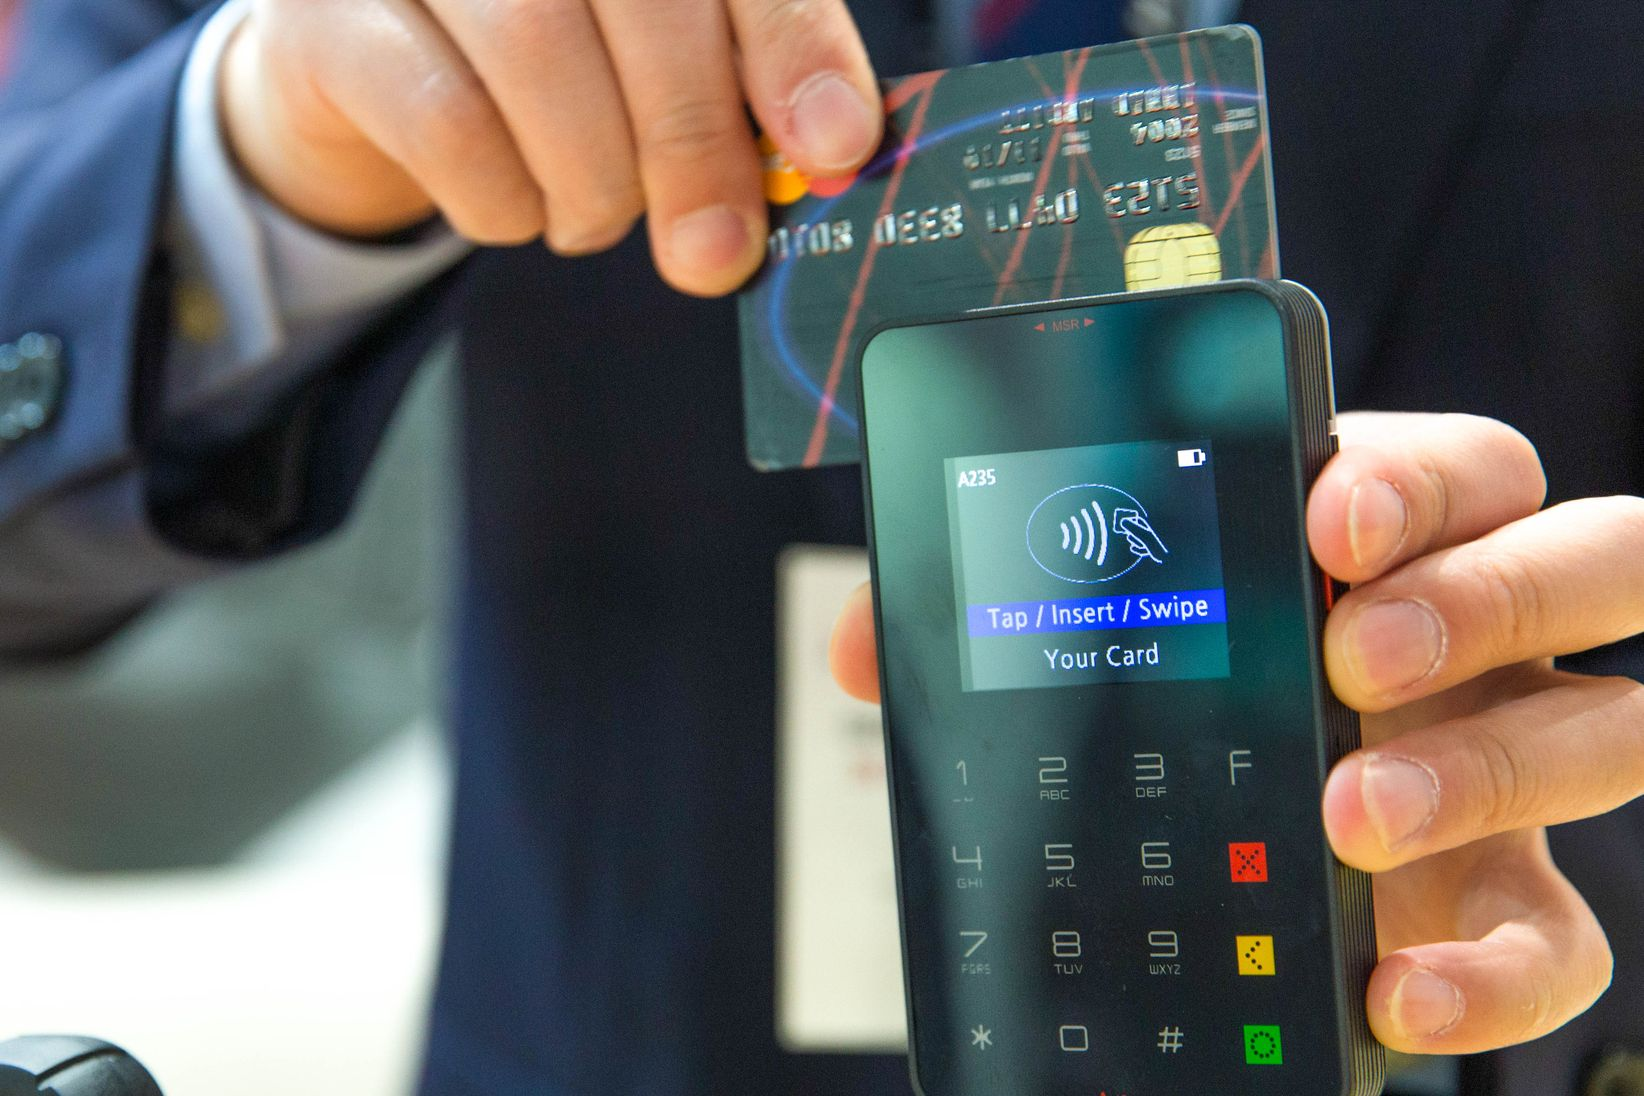 Among the benefits of having an emergency fund is that you reduce the need to rely on credit card debt, as indicated by a credit card being swiped on a credit card terminal